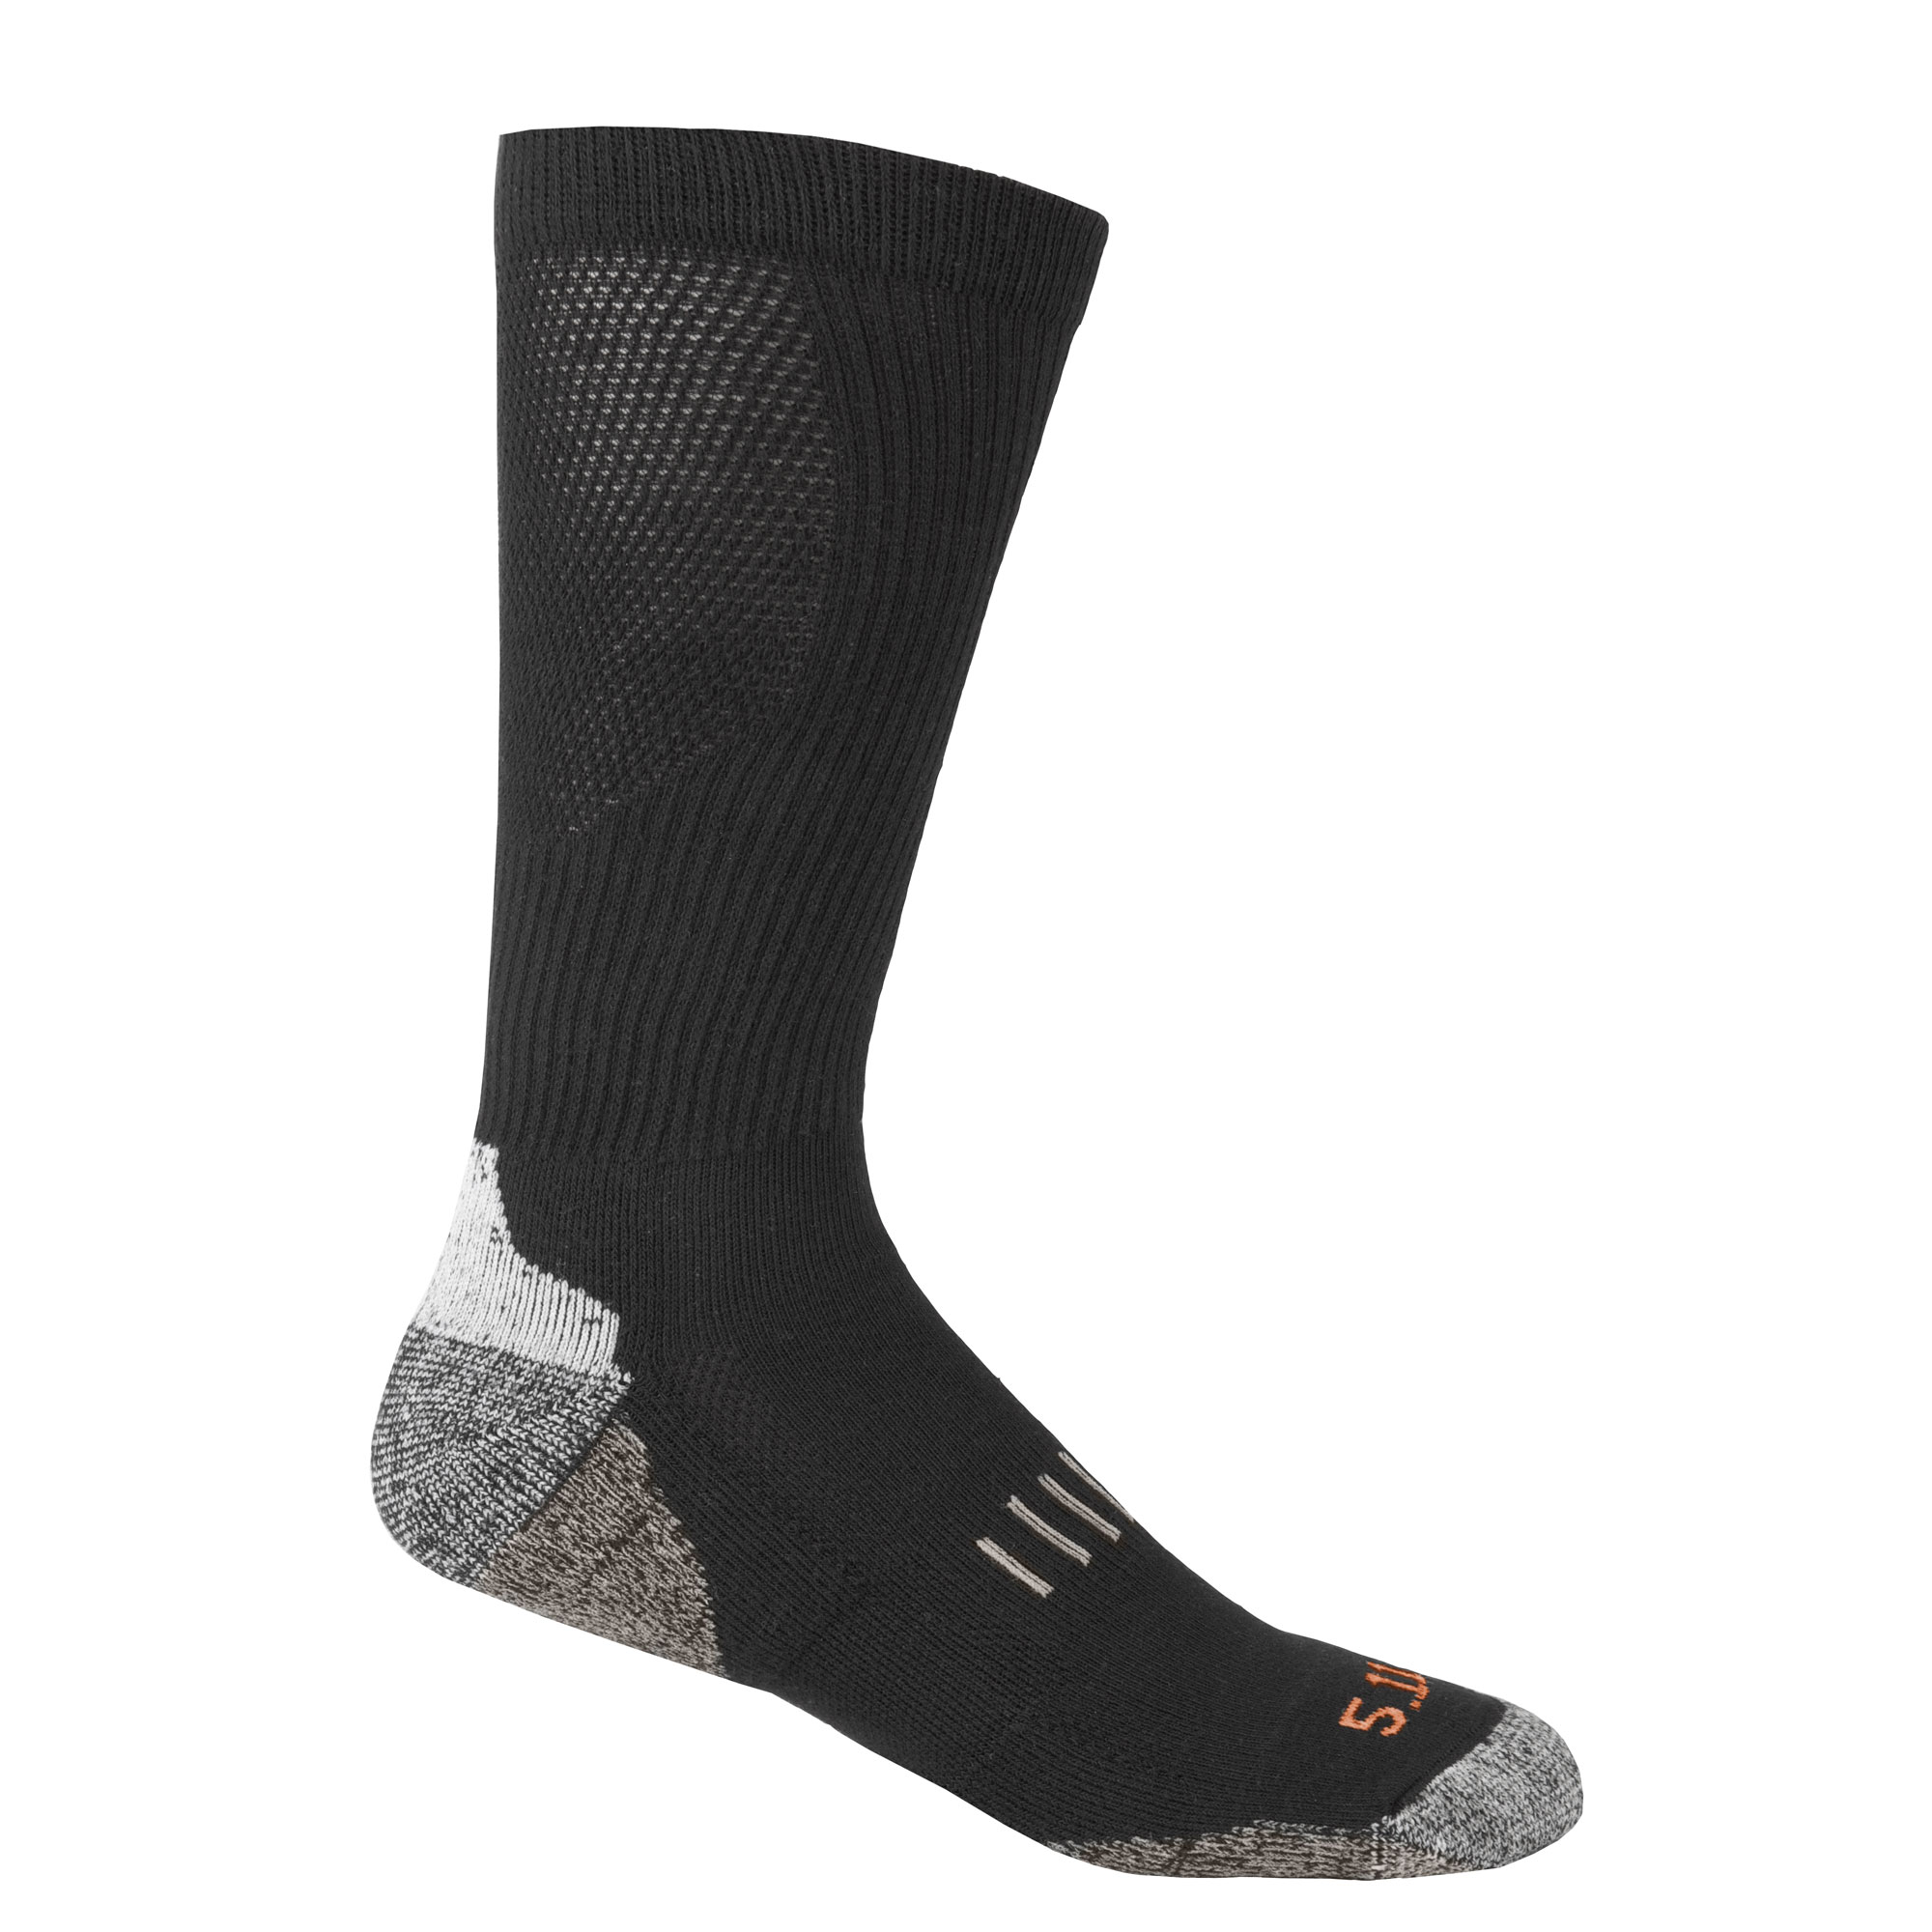 5.11 Year Round OTC Sock - Black [Clearance Size S/M]